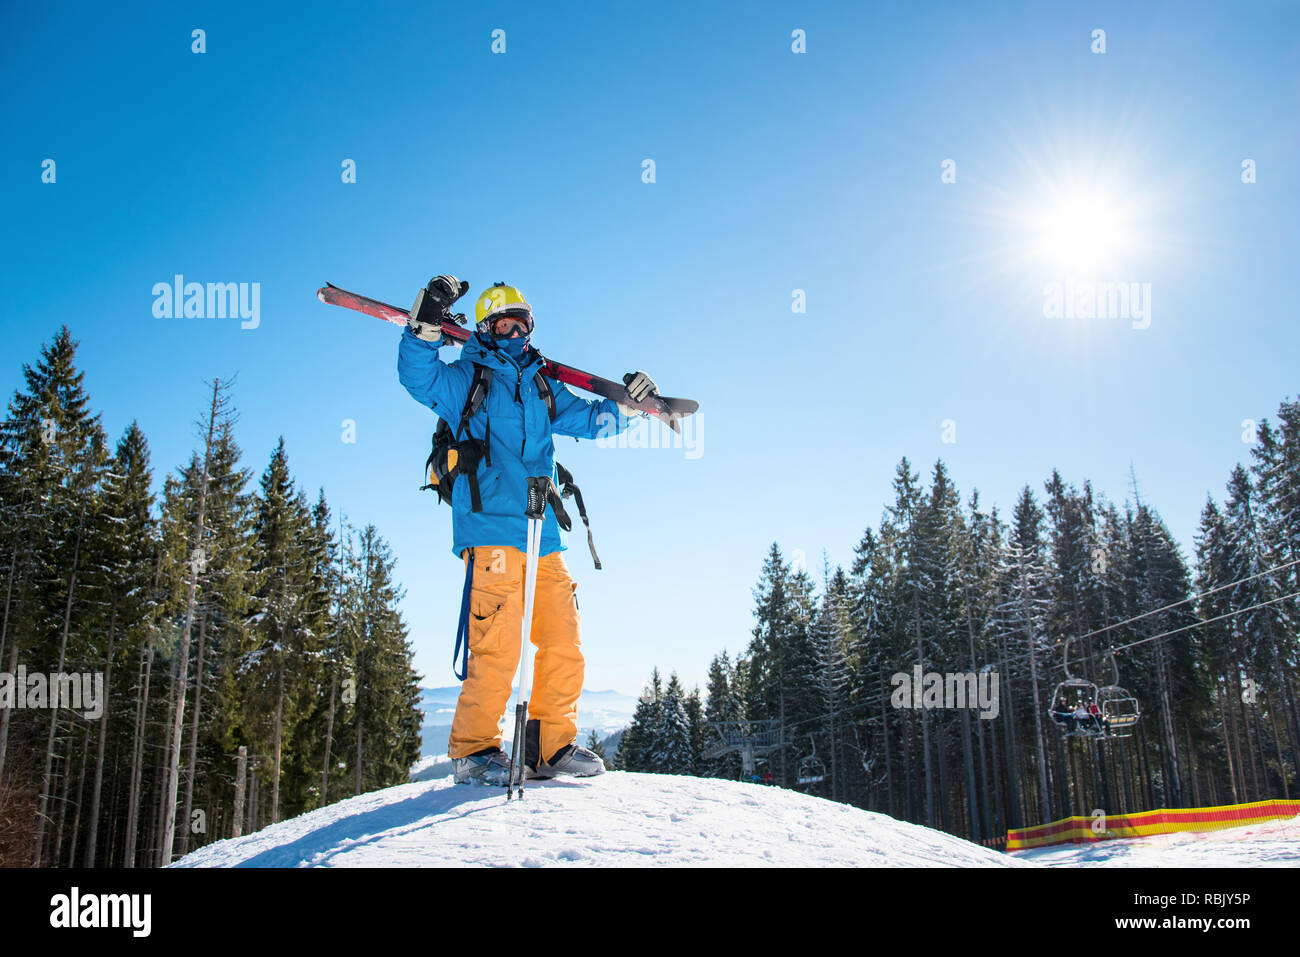 Full length shot of a skier standing on top of a snowy slope in the mountains, raising his arms in the air, enjoying beautiful sunny winter day at winter resort - Stock Image